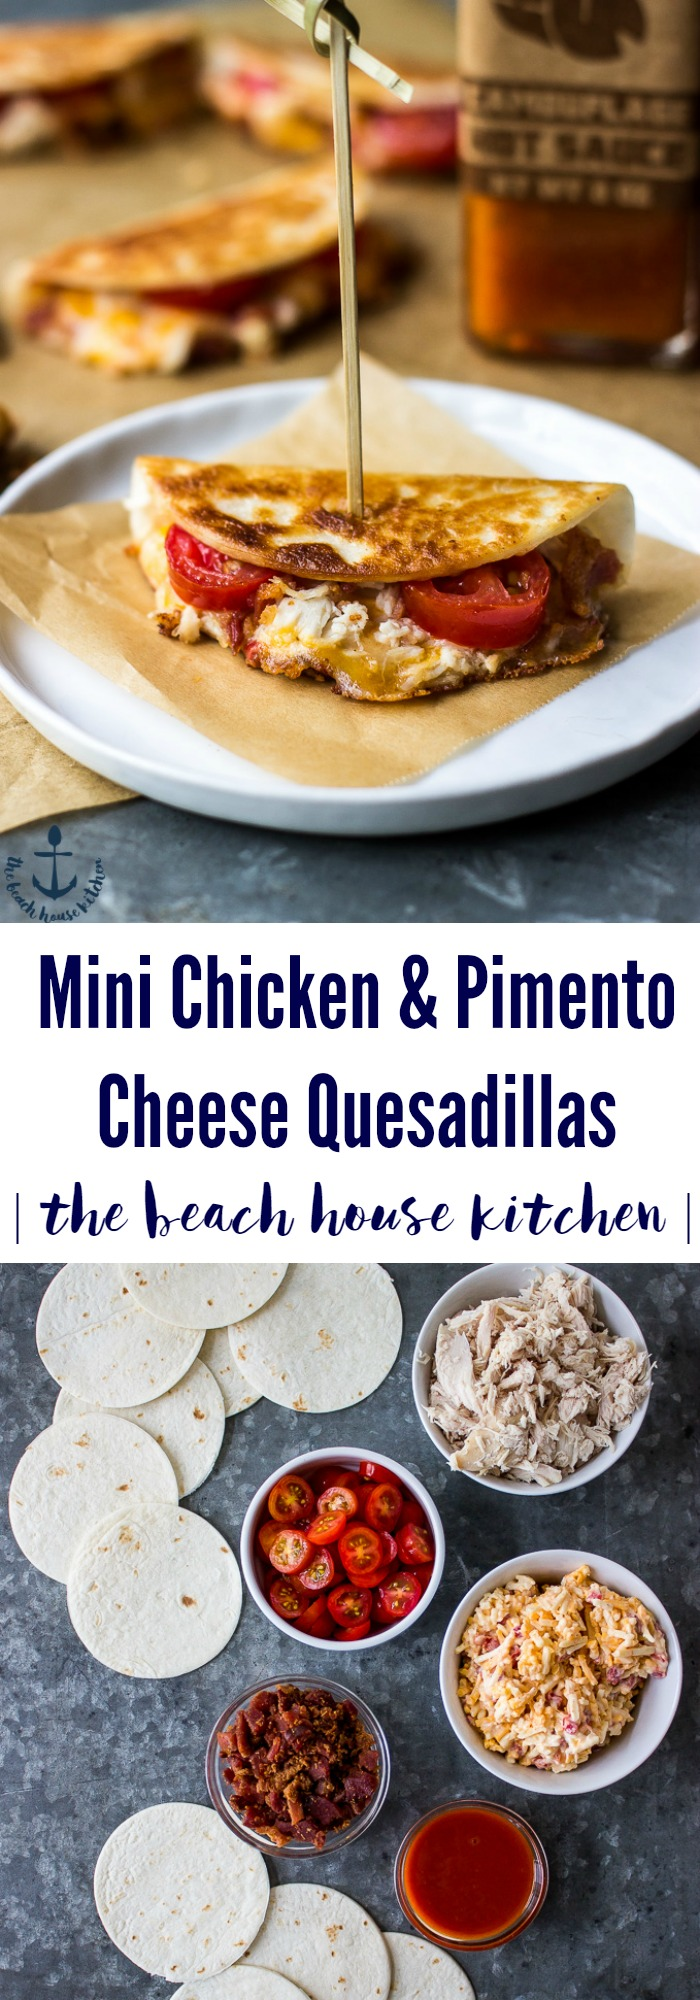 Mini Chicken & Pimento Cheese Quesadillas